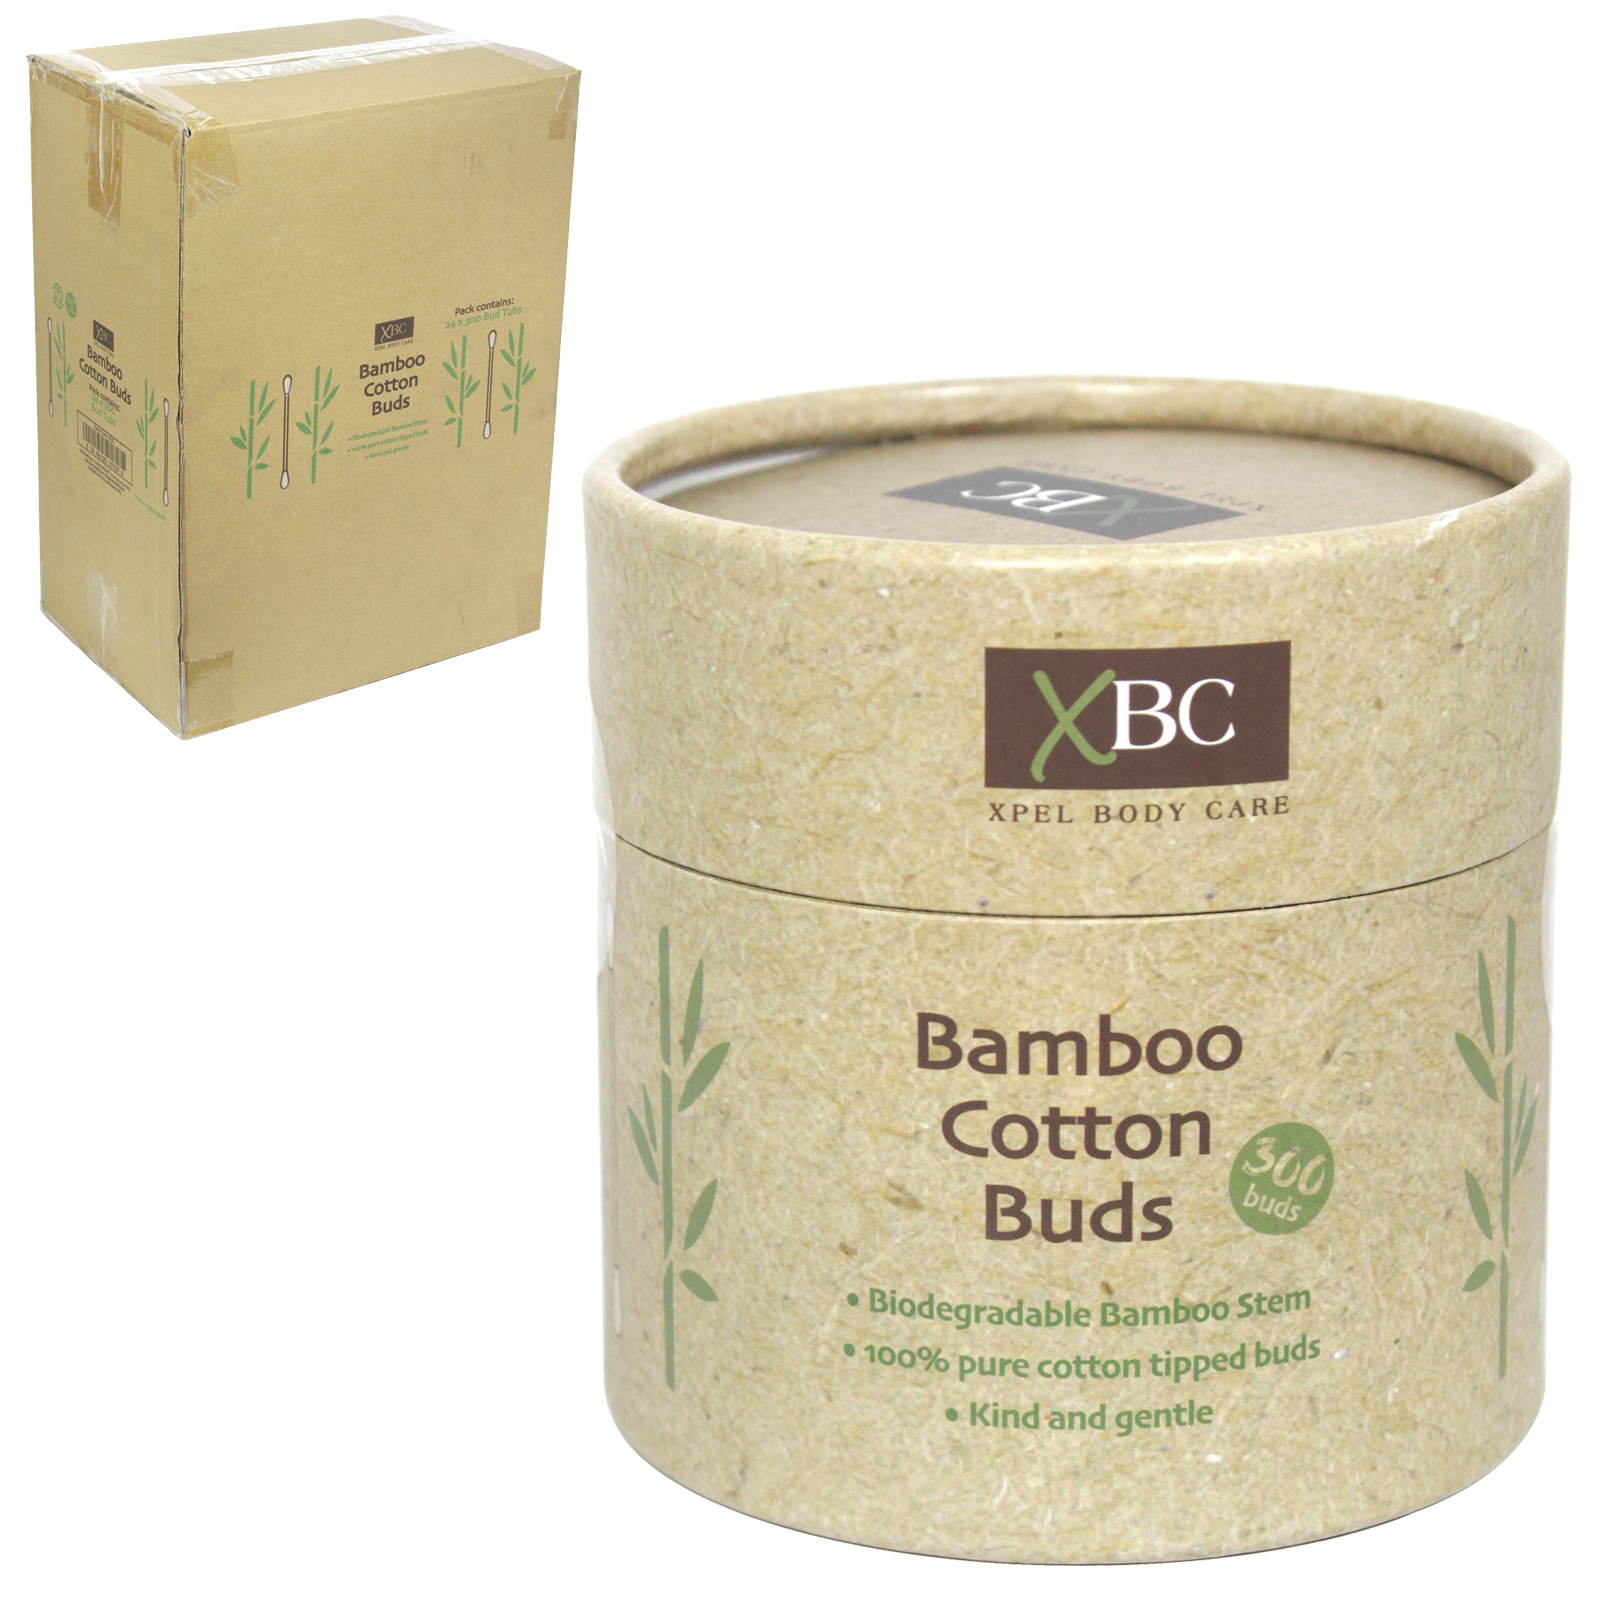 XBC ECO FRIENDLY BAMBOO COTTON BUDS 300S X24